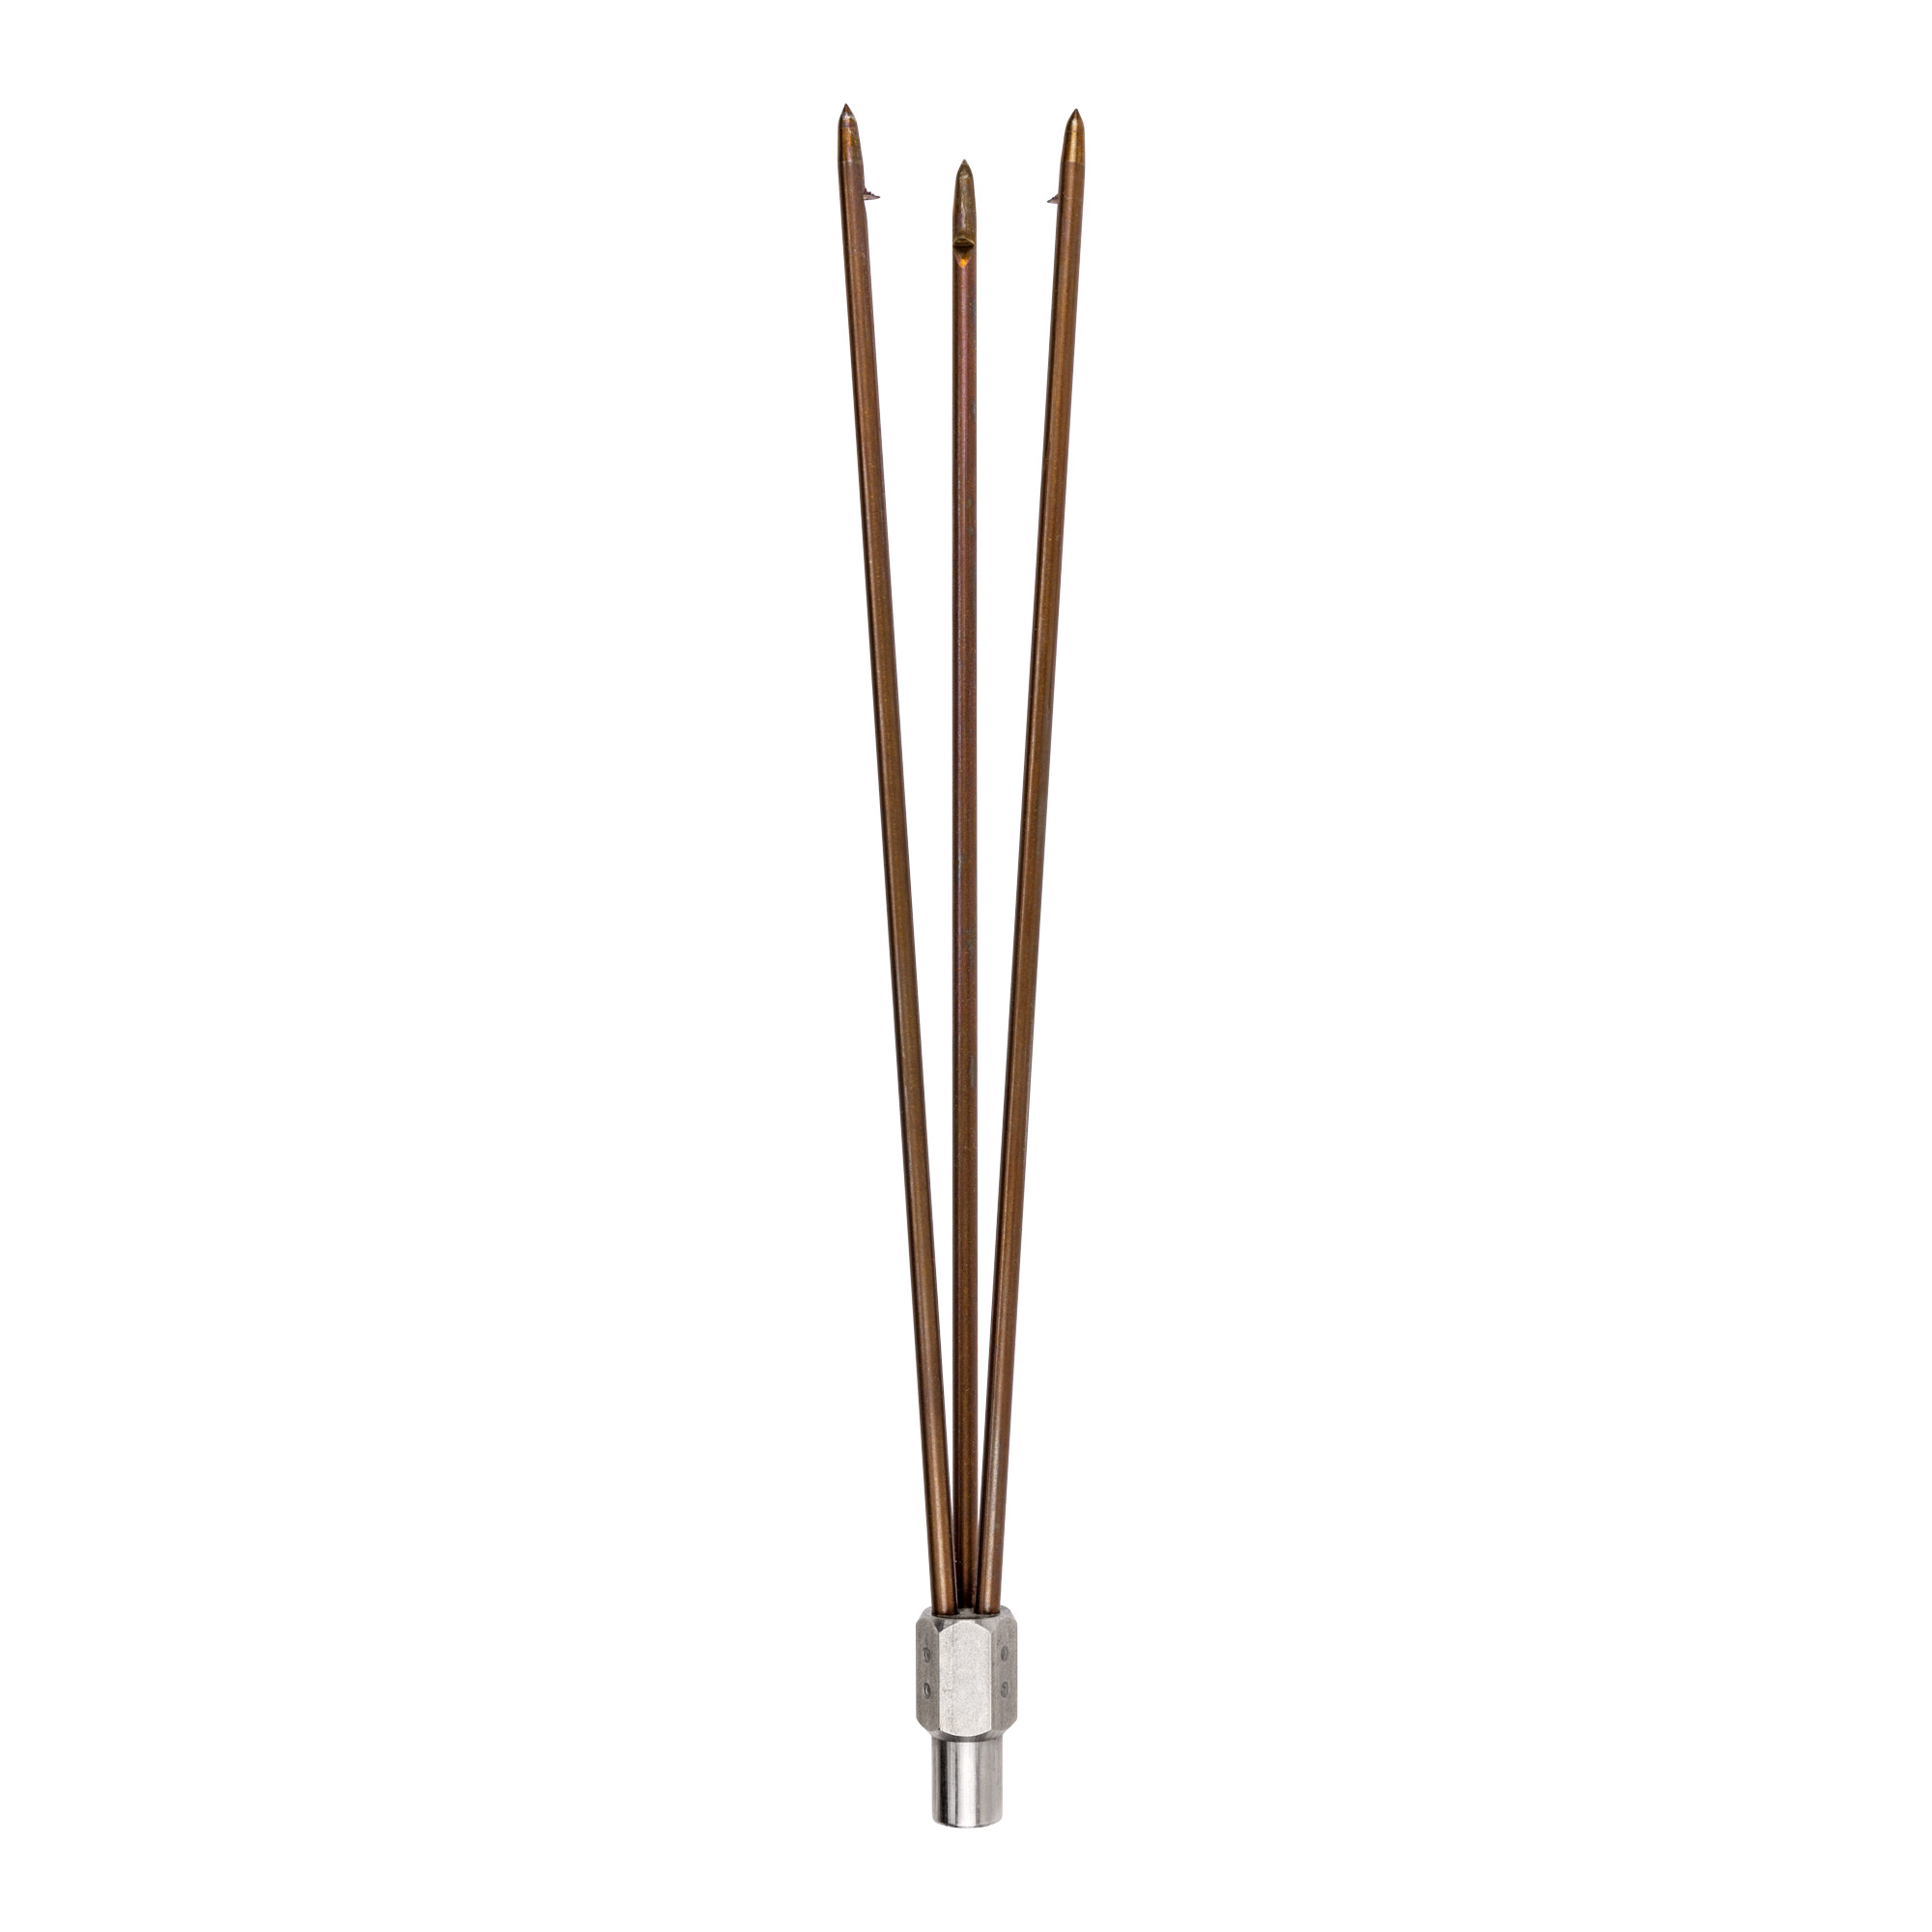 JBL Stainless Steel Tines Barbed Paralyzer Spear Point